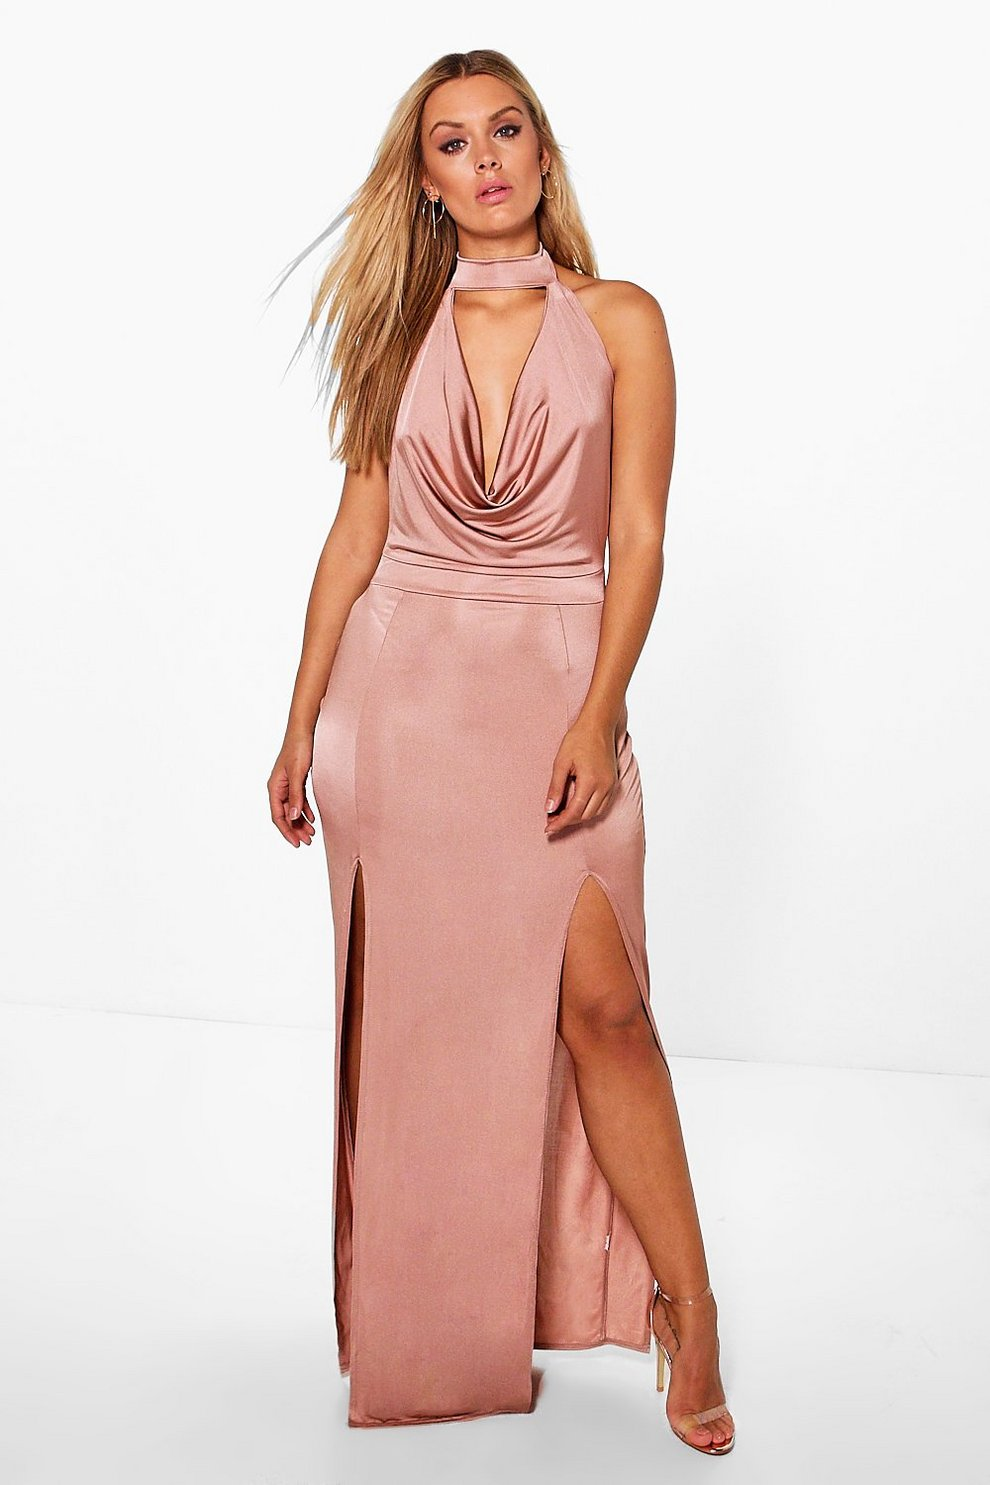 ae1dcb3dca3 Womens Dusky pink Plus Harper Cowl Choker Maxi Dress. Hover to zoom